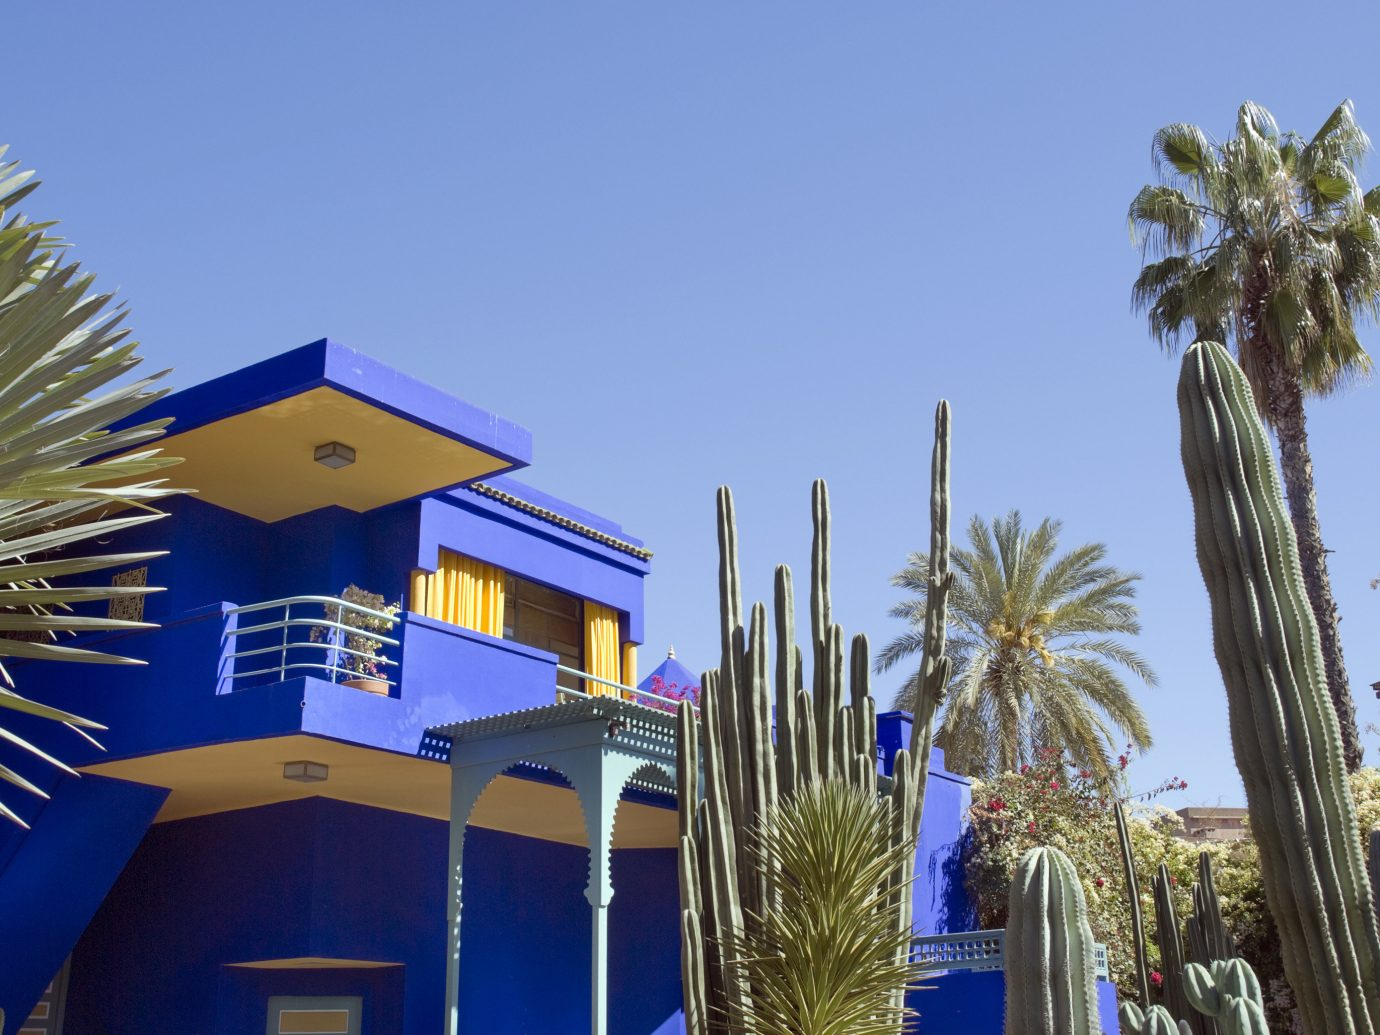 Trip Ideas sky tree outdoor blue majorelle blue property palm tree arecales plant palm Architecture home real estate building daytime house residential area neighbourhood City facade vacation lined